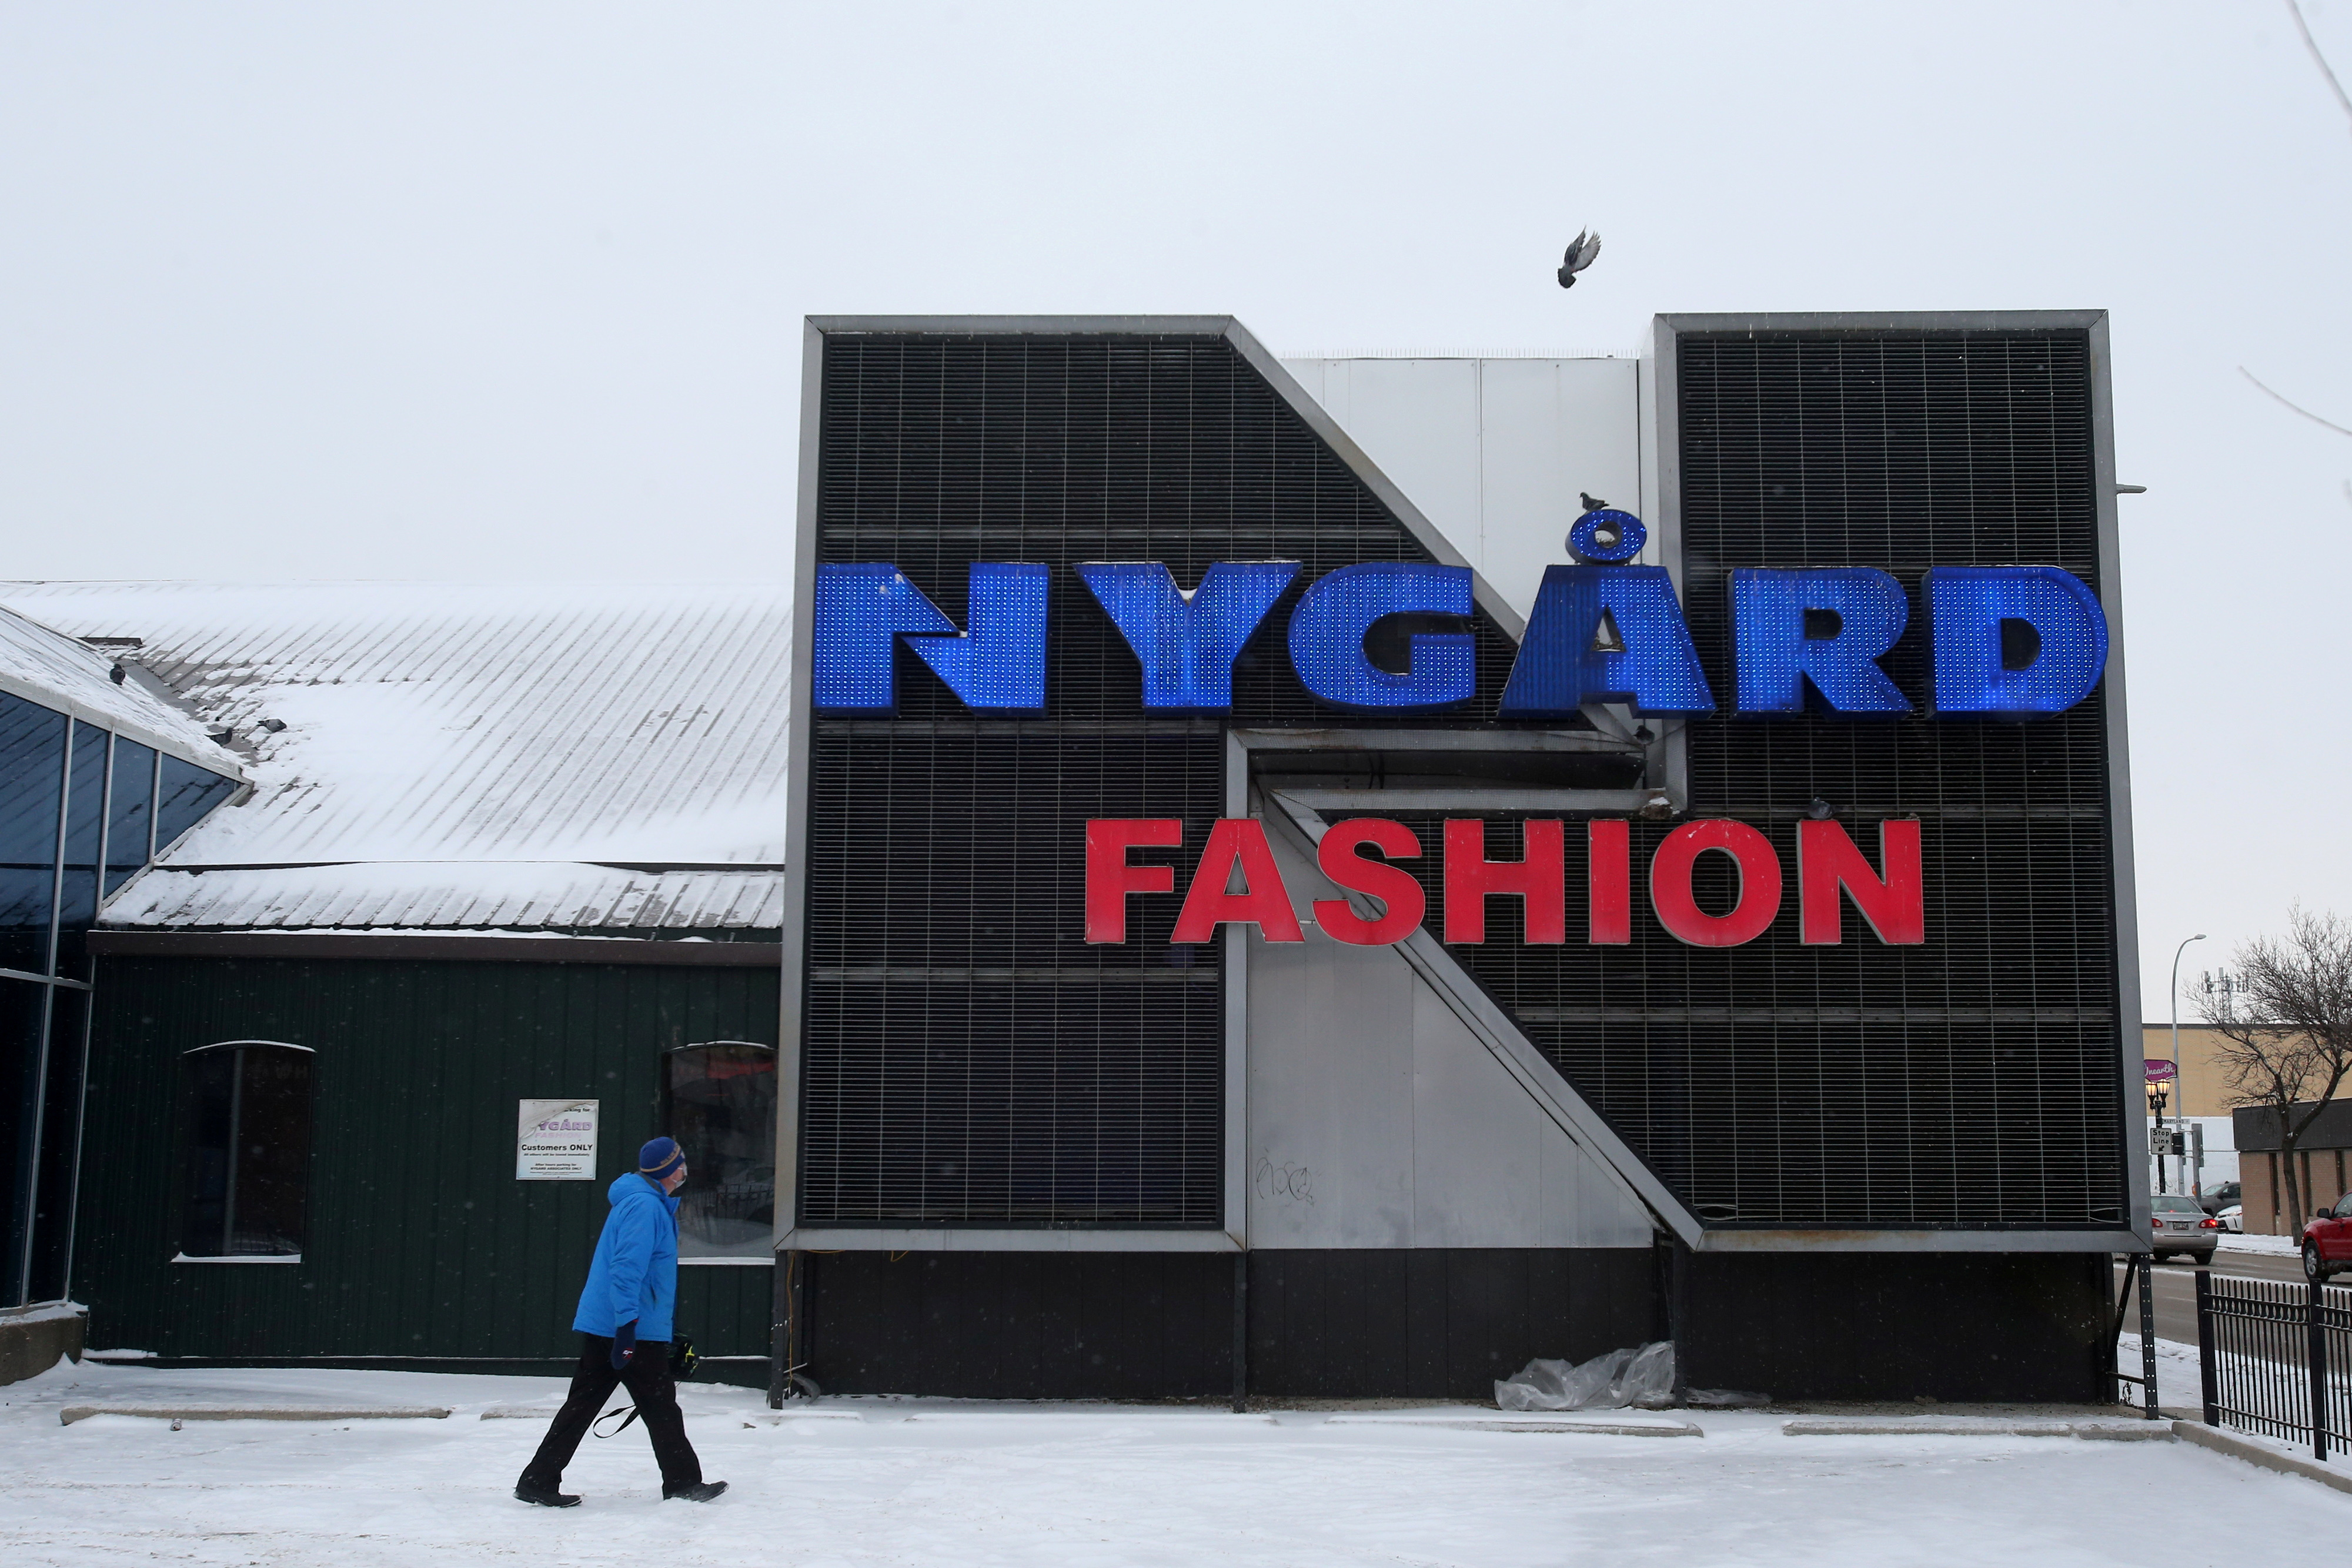 The name of fashion executive and designer Peter Nygard is illuminated on a flagship store he once owned in Winnipeg, Manitoba, Canada December 15, 2020. REUTERS/Shannon VanRaes/File Photo